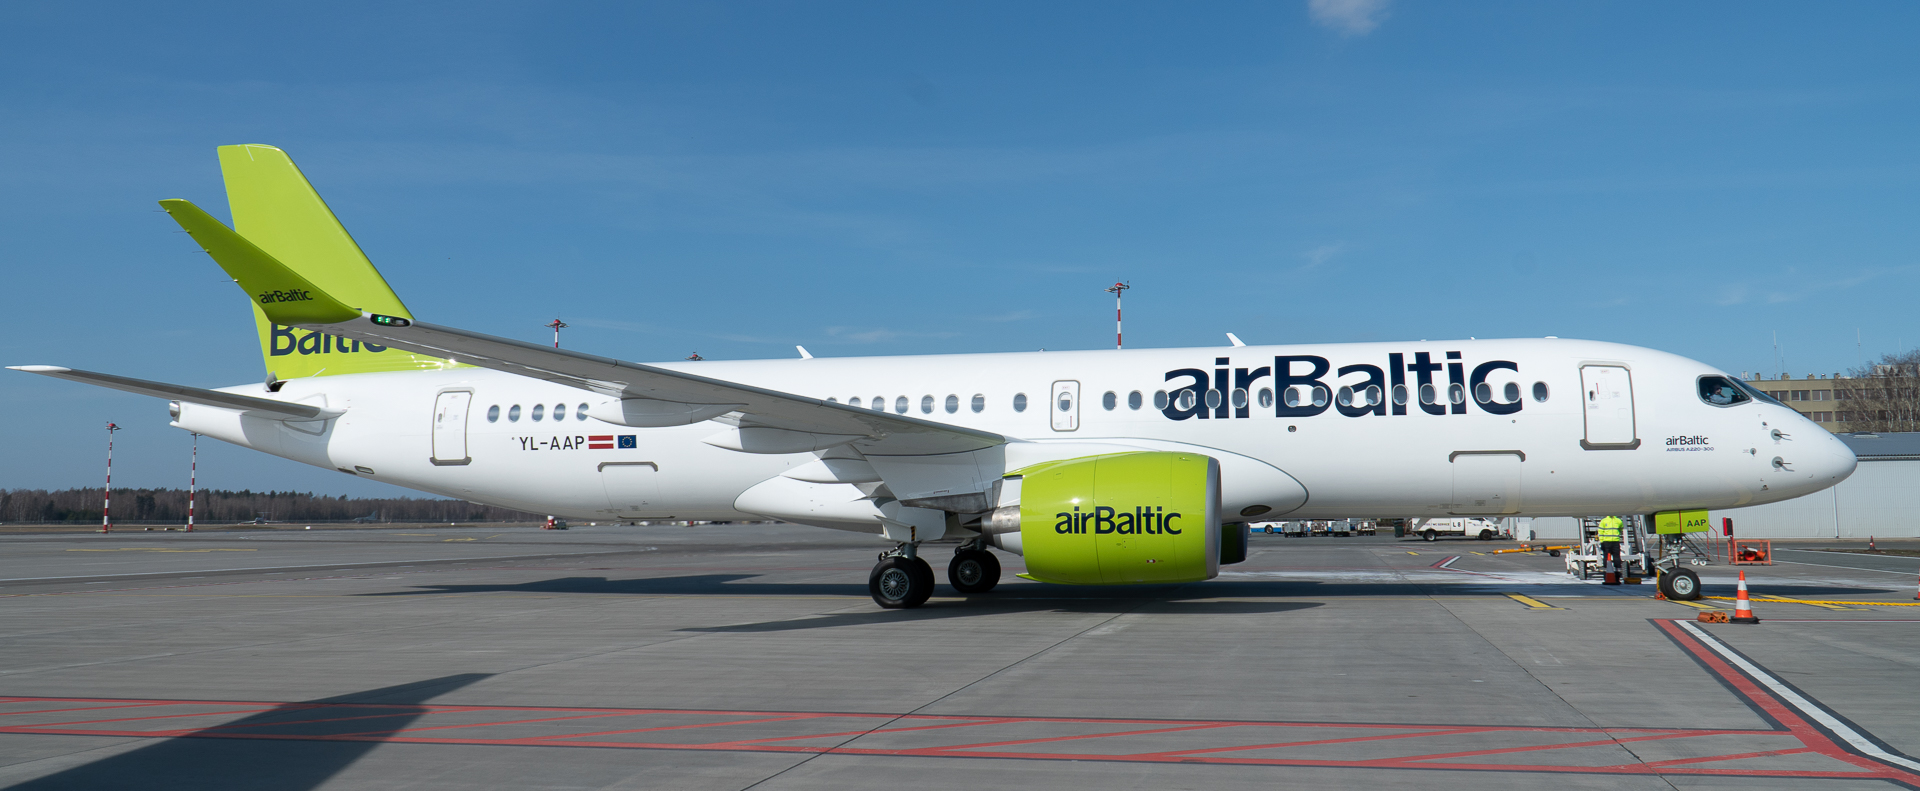 A220-300 airBalic YL-AAP